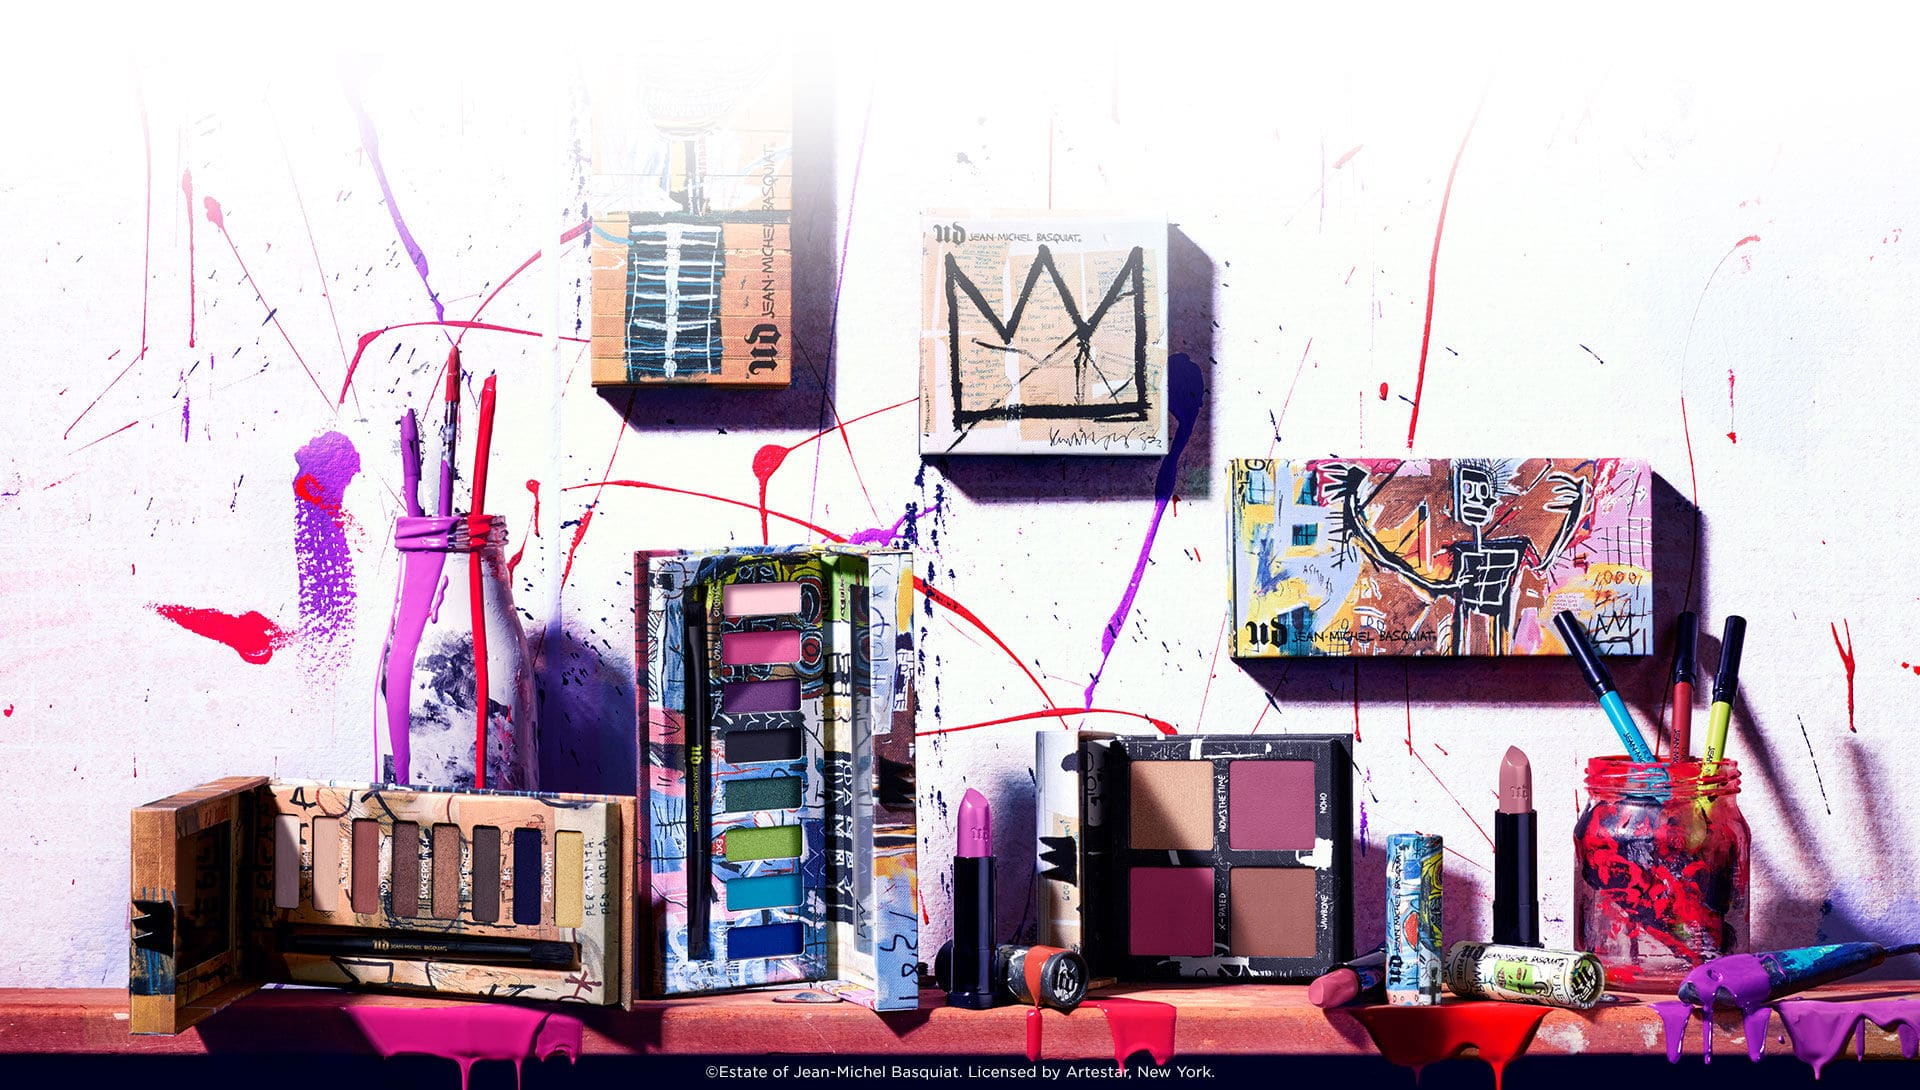 Jean-Michel Basquiat Collection by Urban Decay